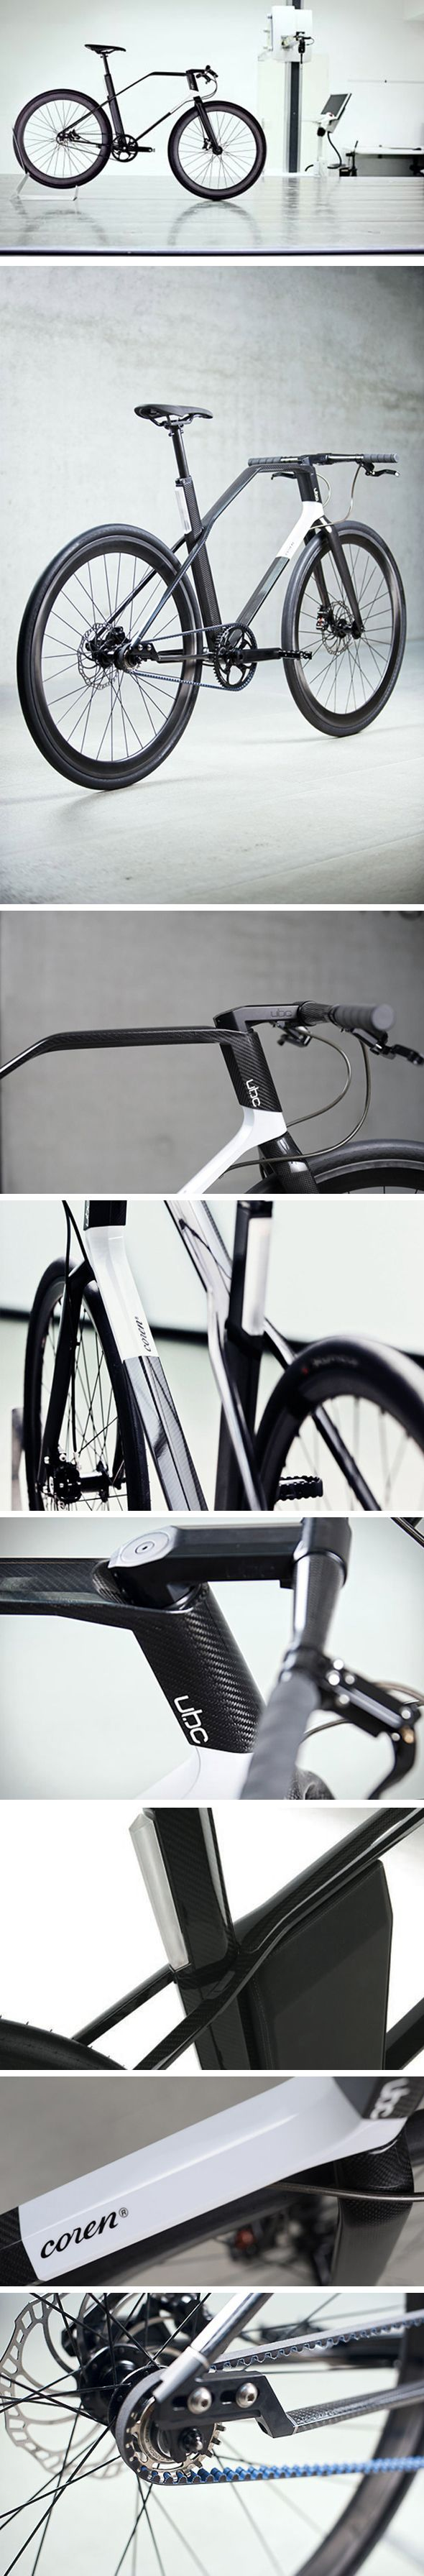 80 best bike images on Pinterest | Bicycles, Bike and Autos